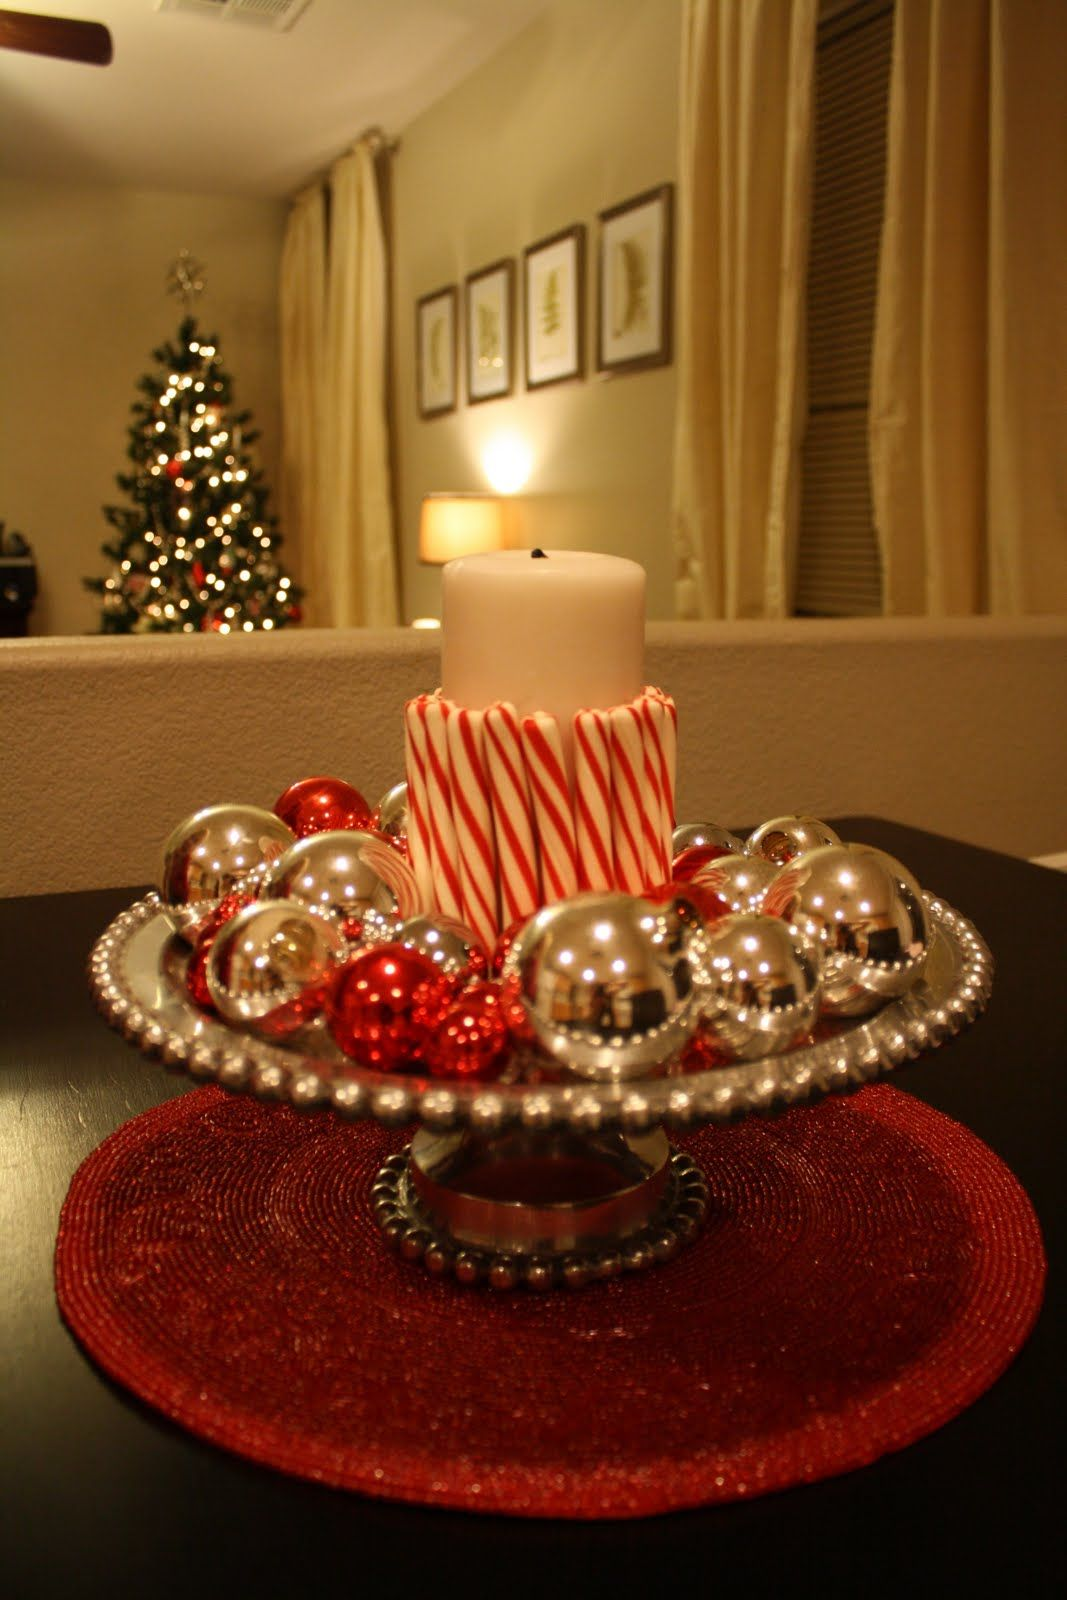 Candy Cane Party Decorations This And That Creative Blog Candy Cane Candle  Christmas